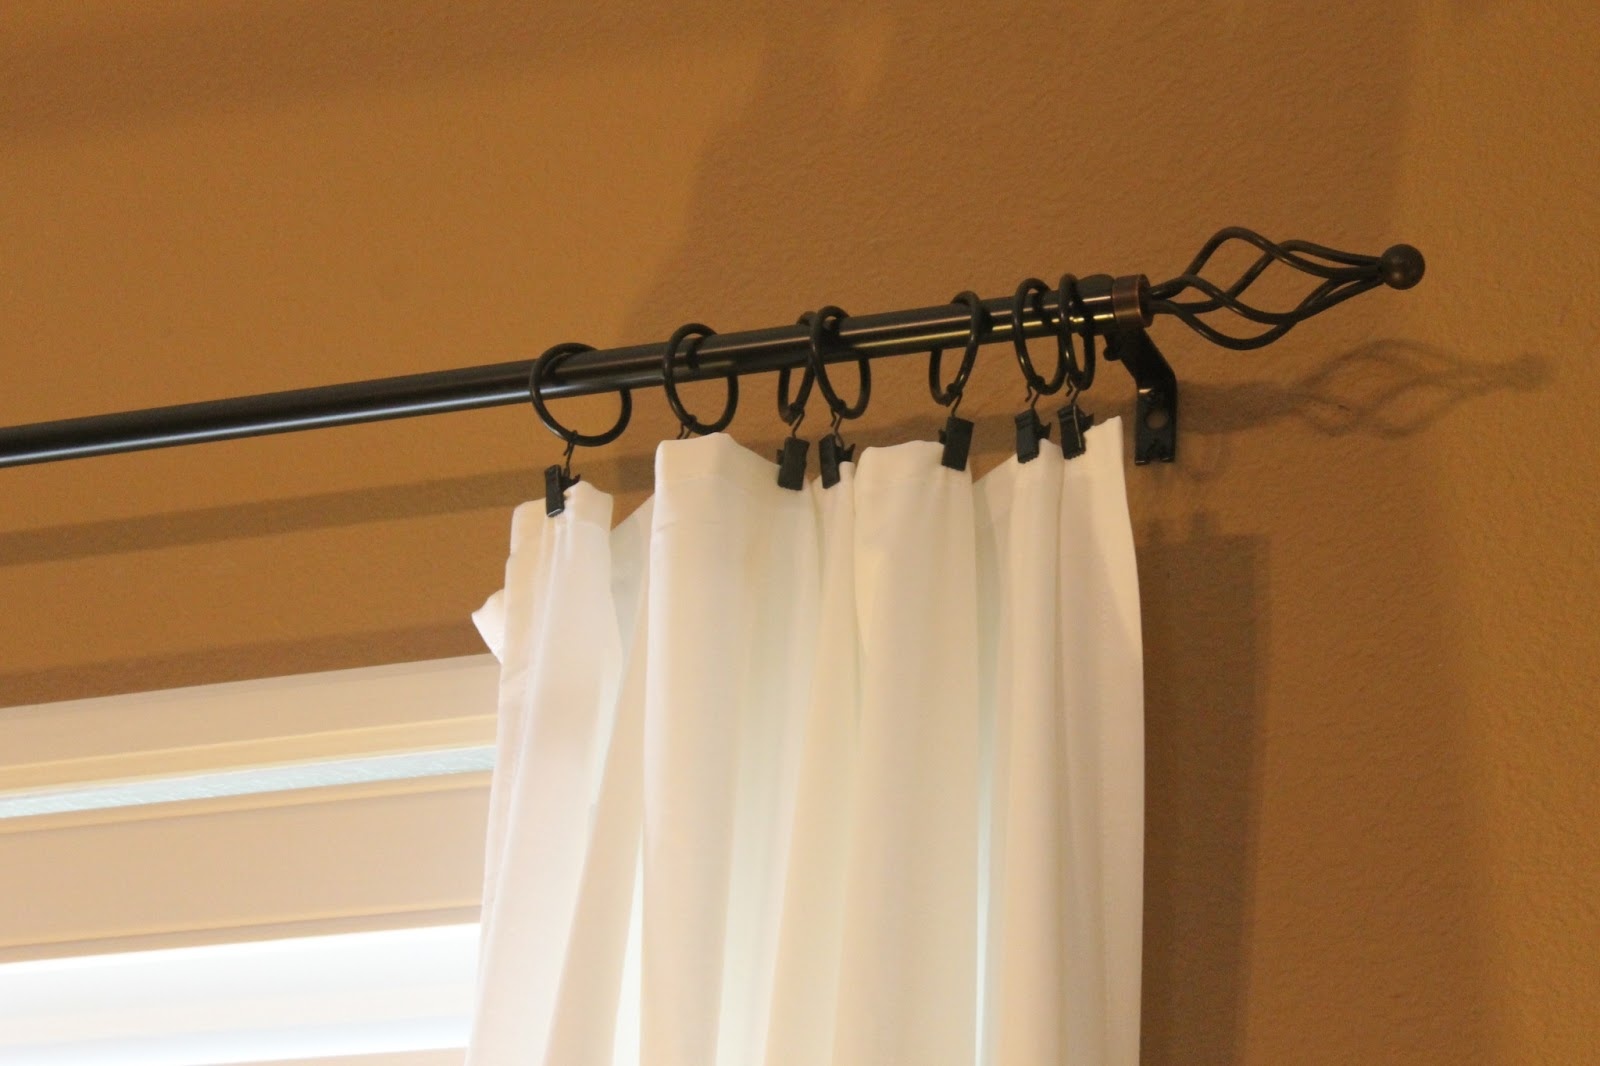 Clean Shower Curtain Liner Vintage Curtain Rings